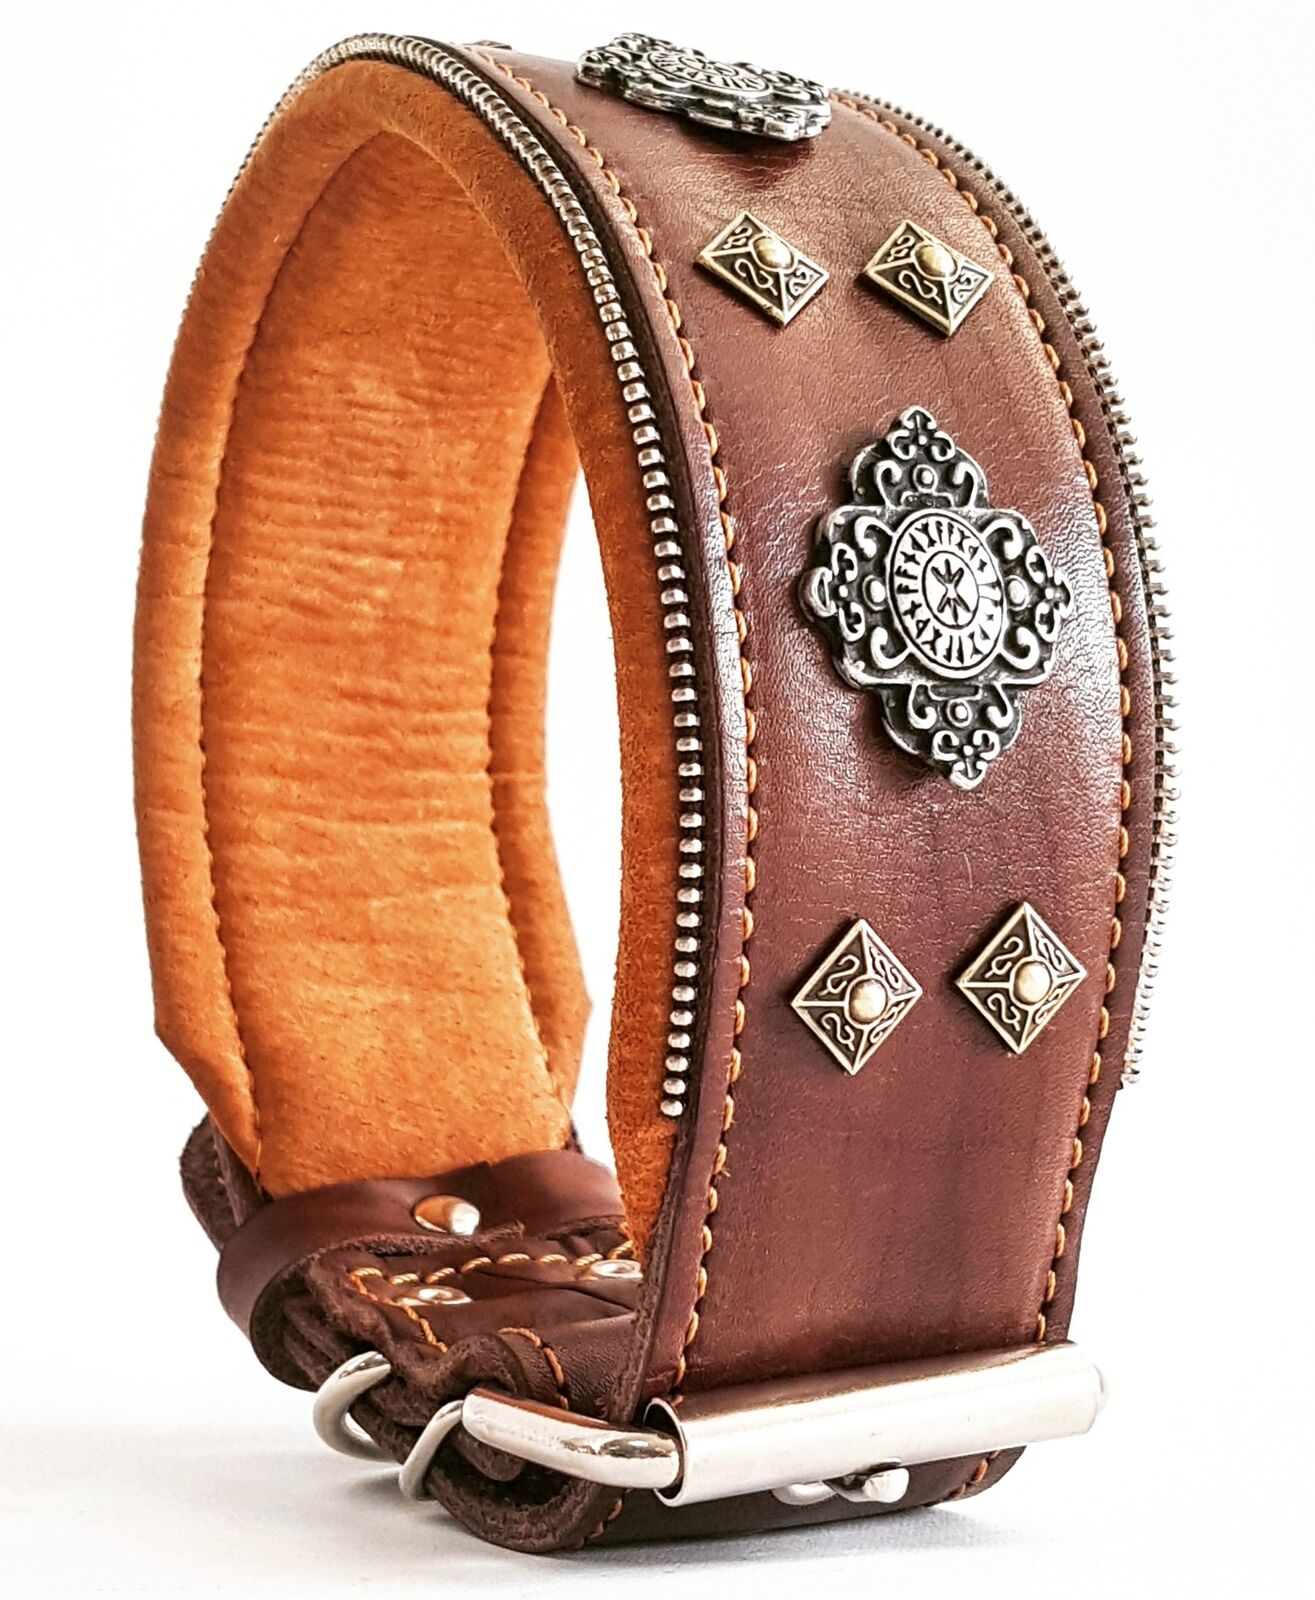 Bestia Aztec big dog leather collar with rivet decoration. padded. padded. padded. Hand made c491d7